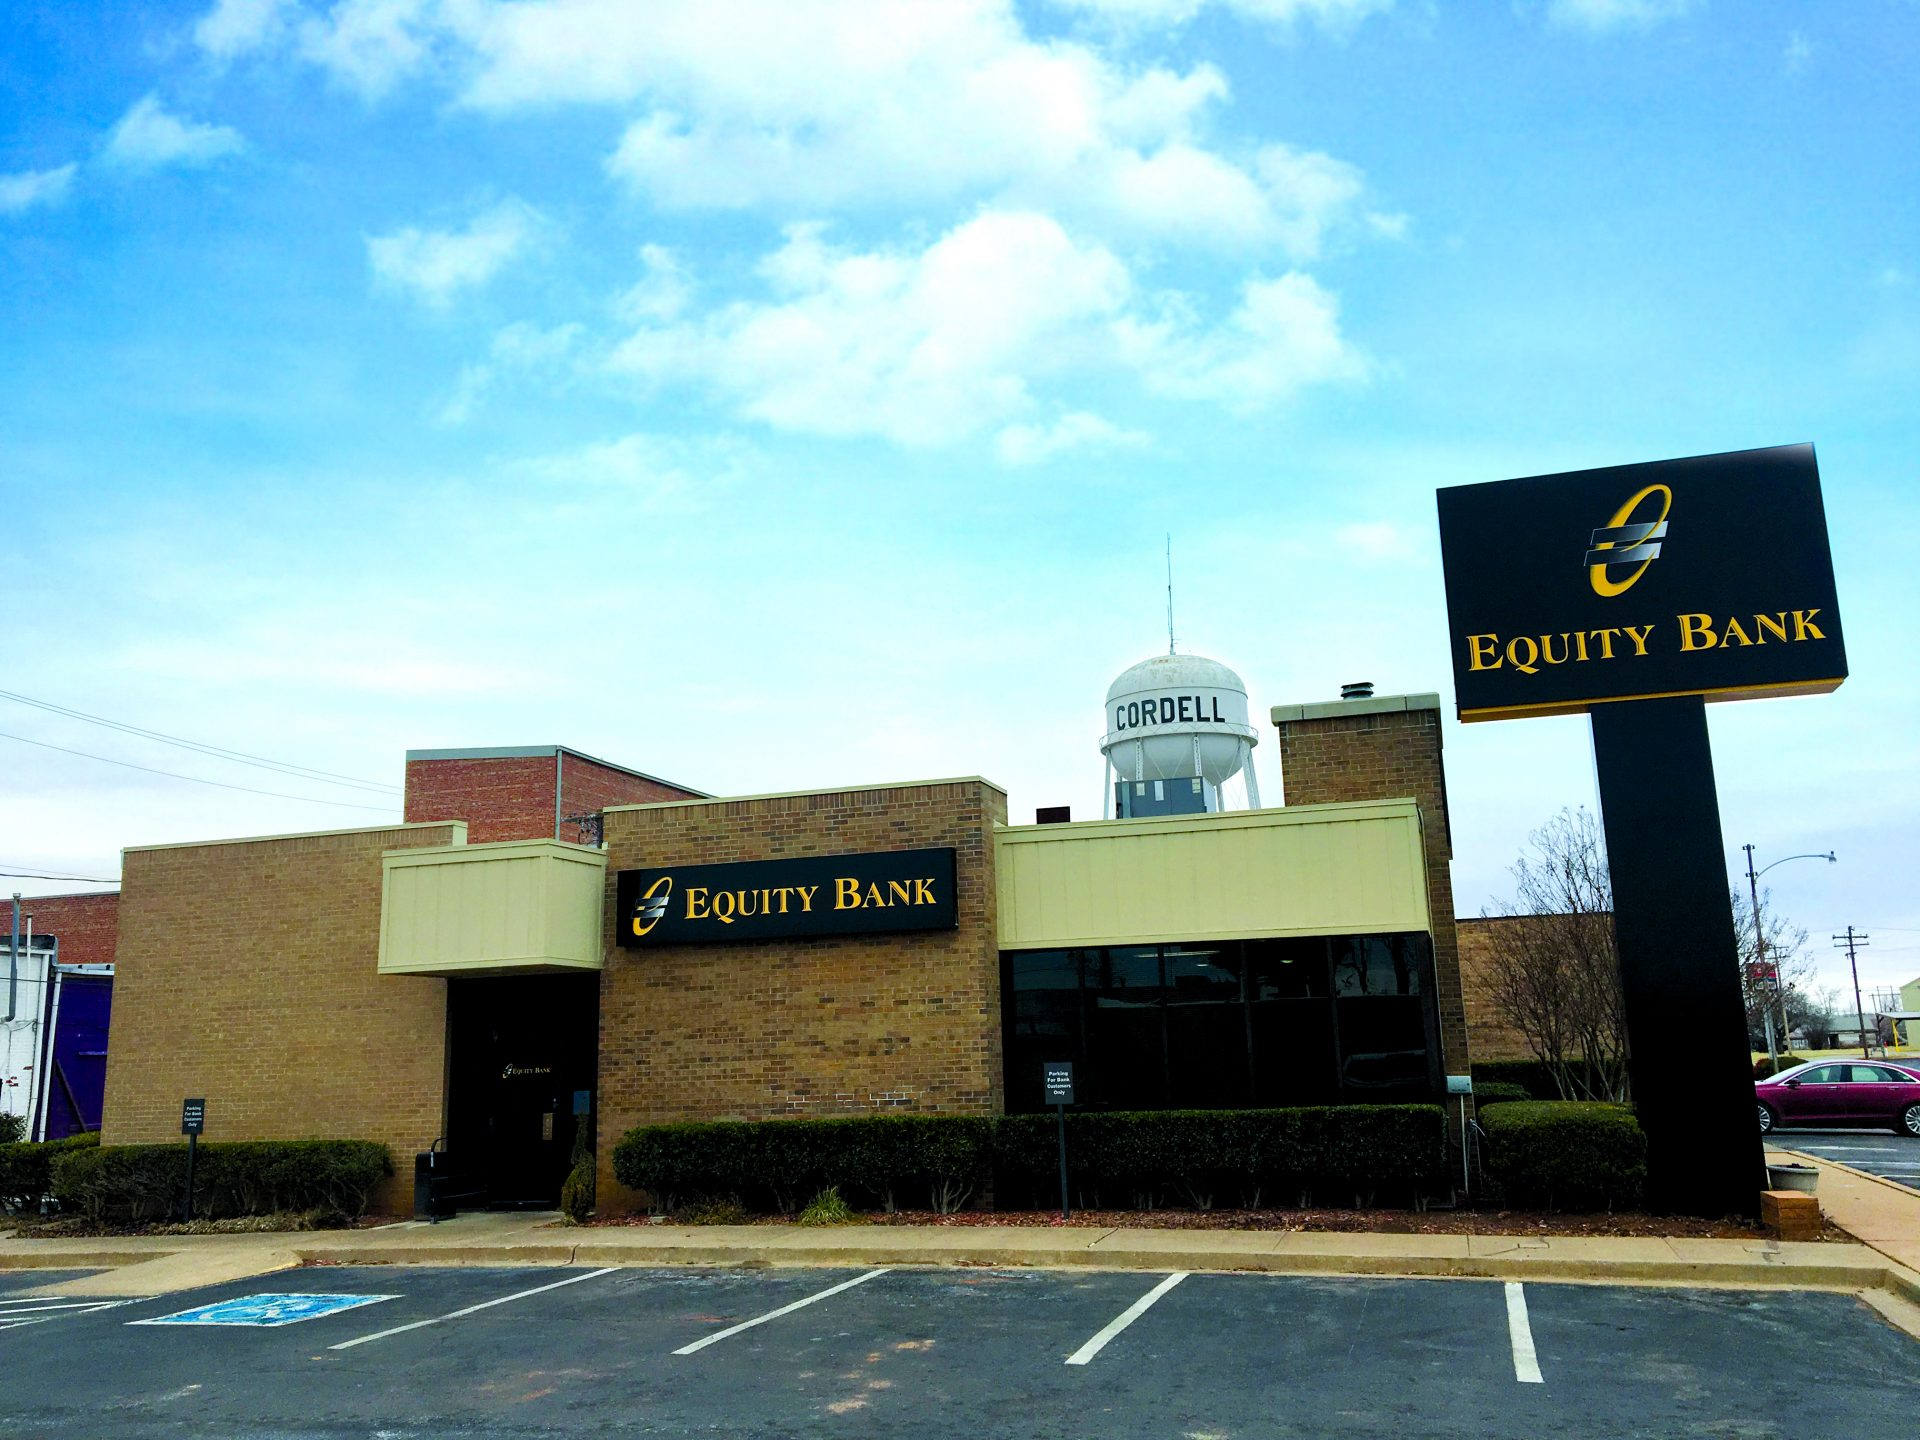 Equity Bank Cordell branch exterior.